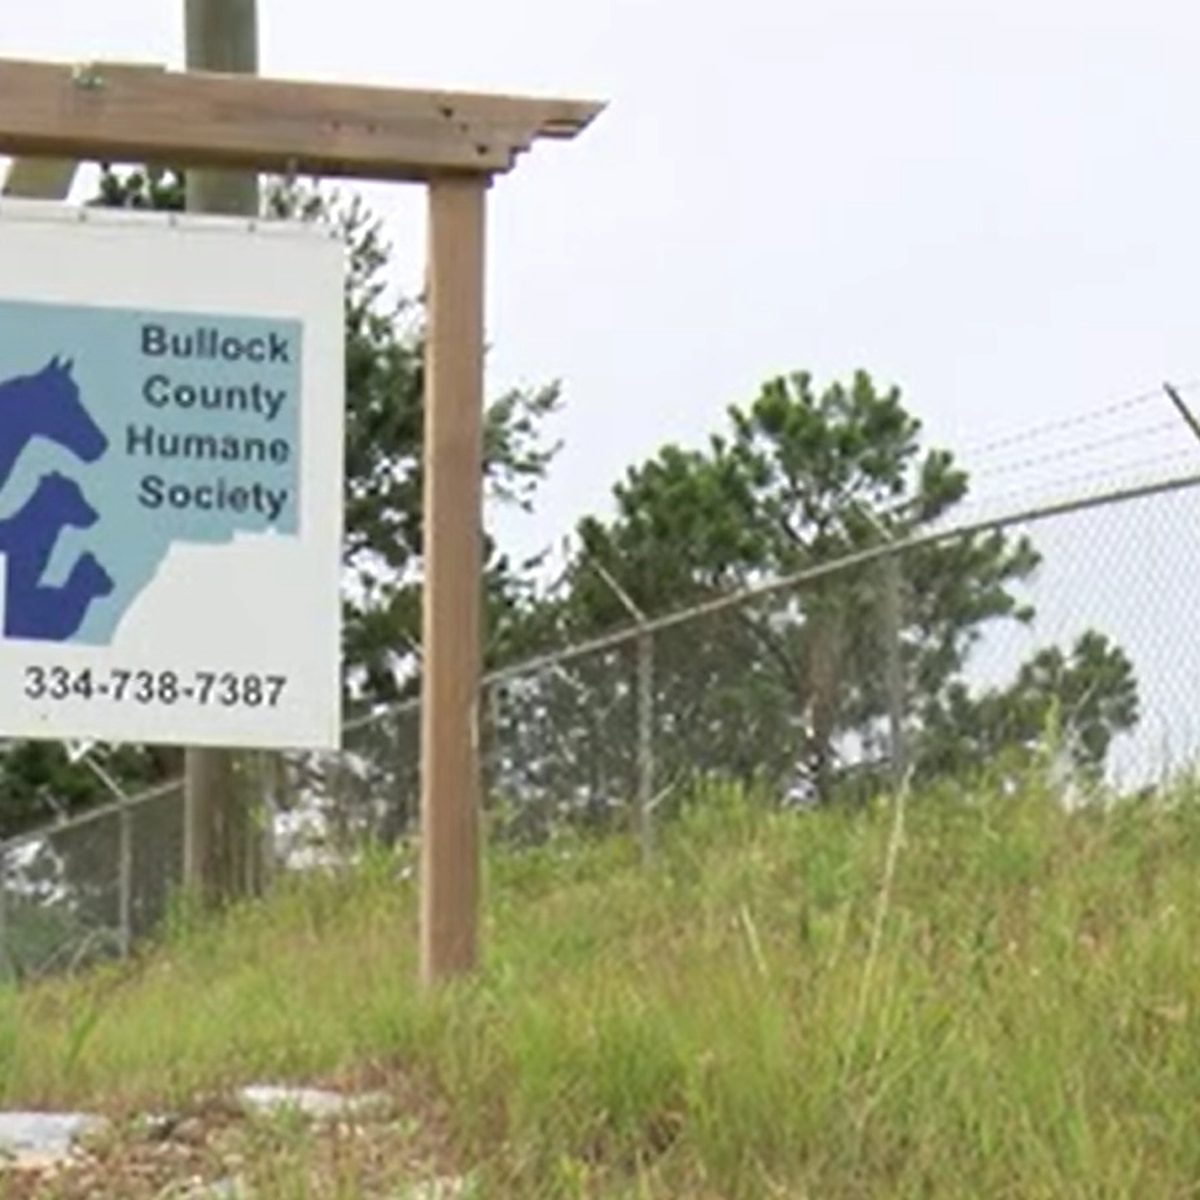 Alleged Bullock County Human Society dog thief faces new charge